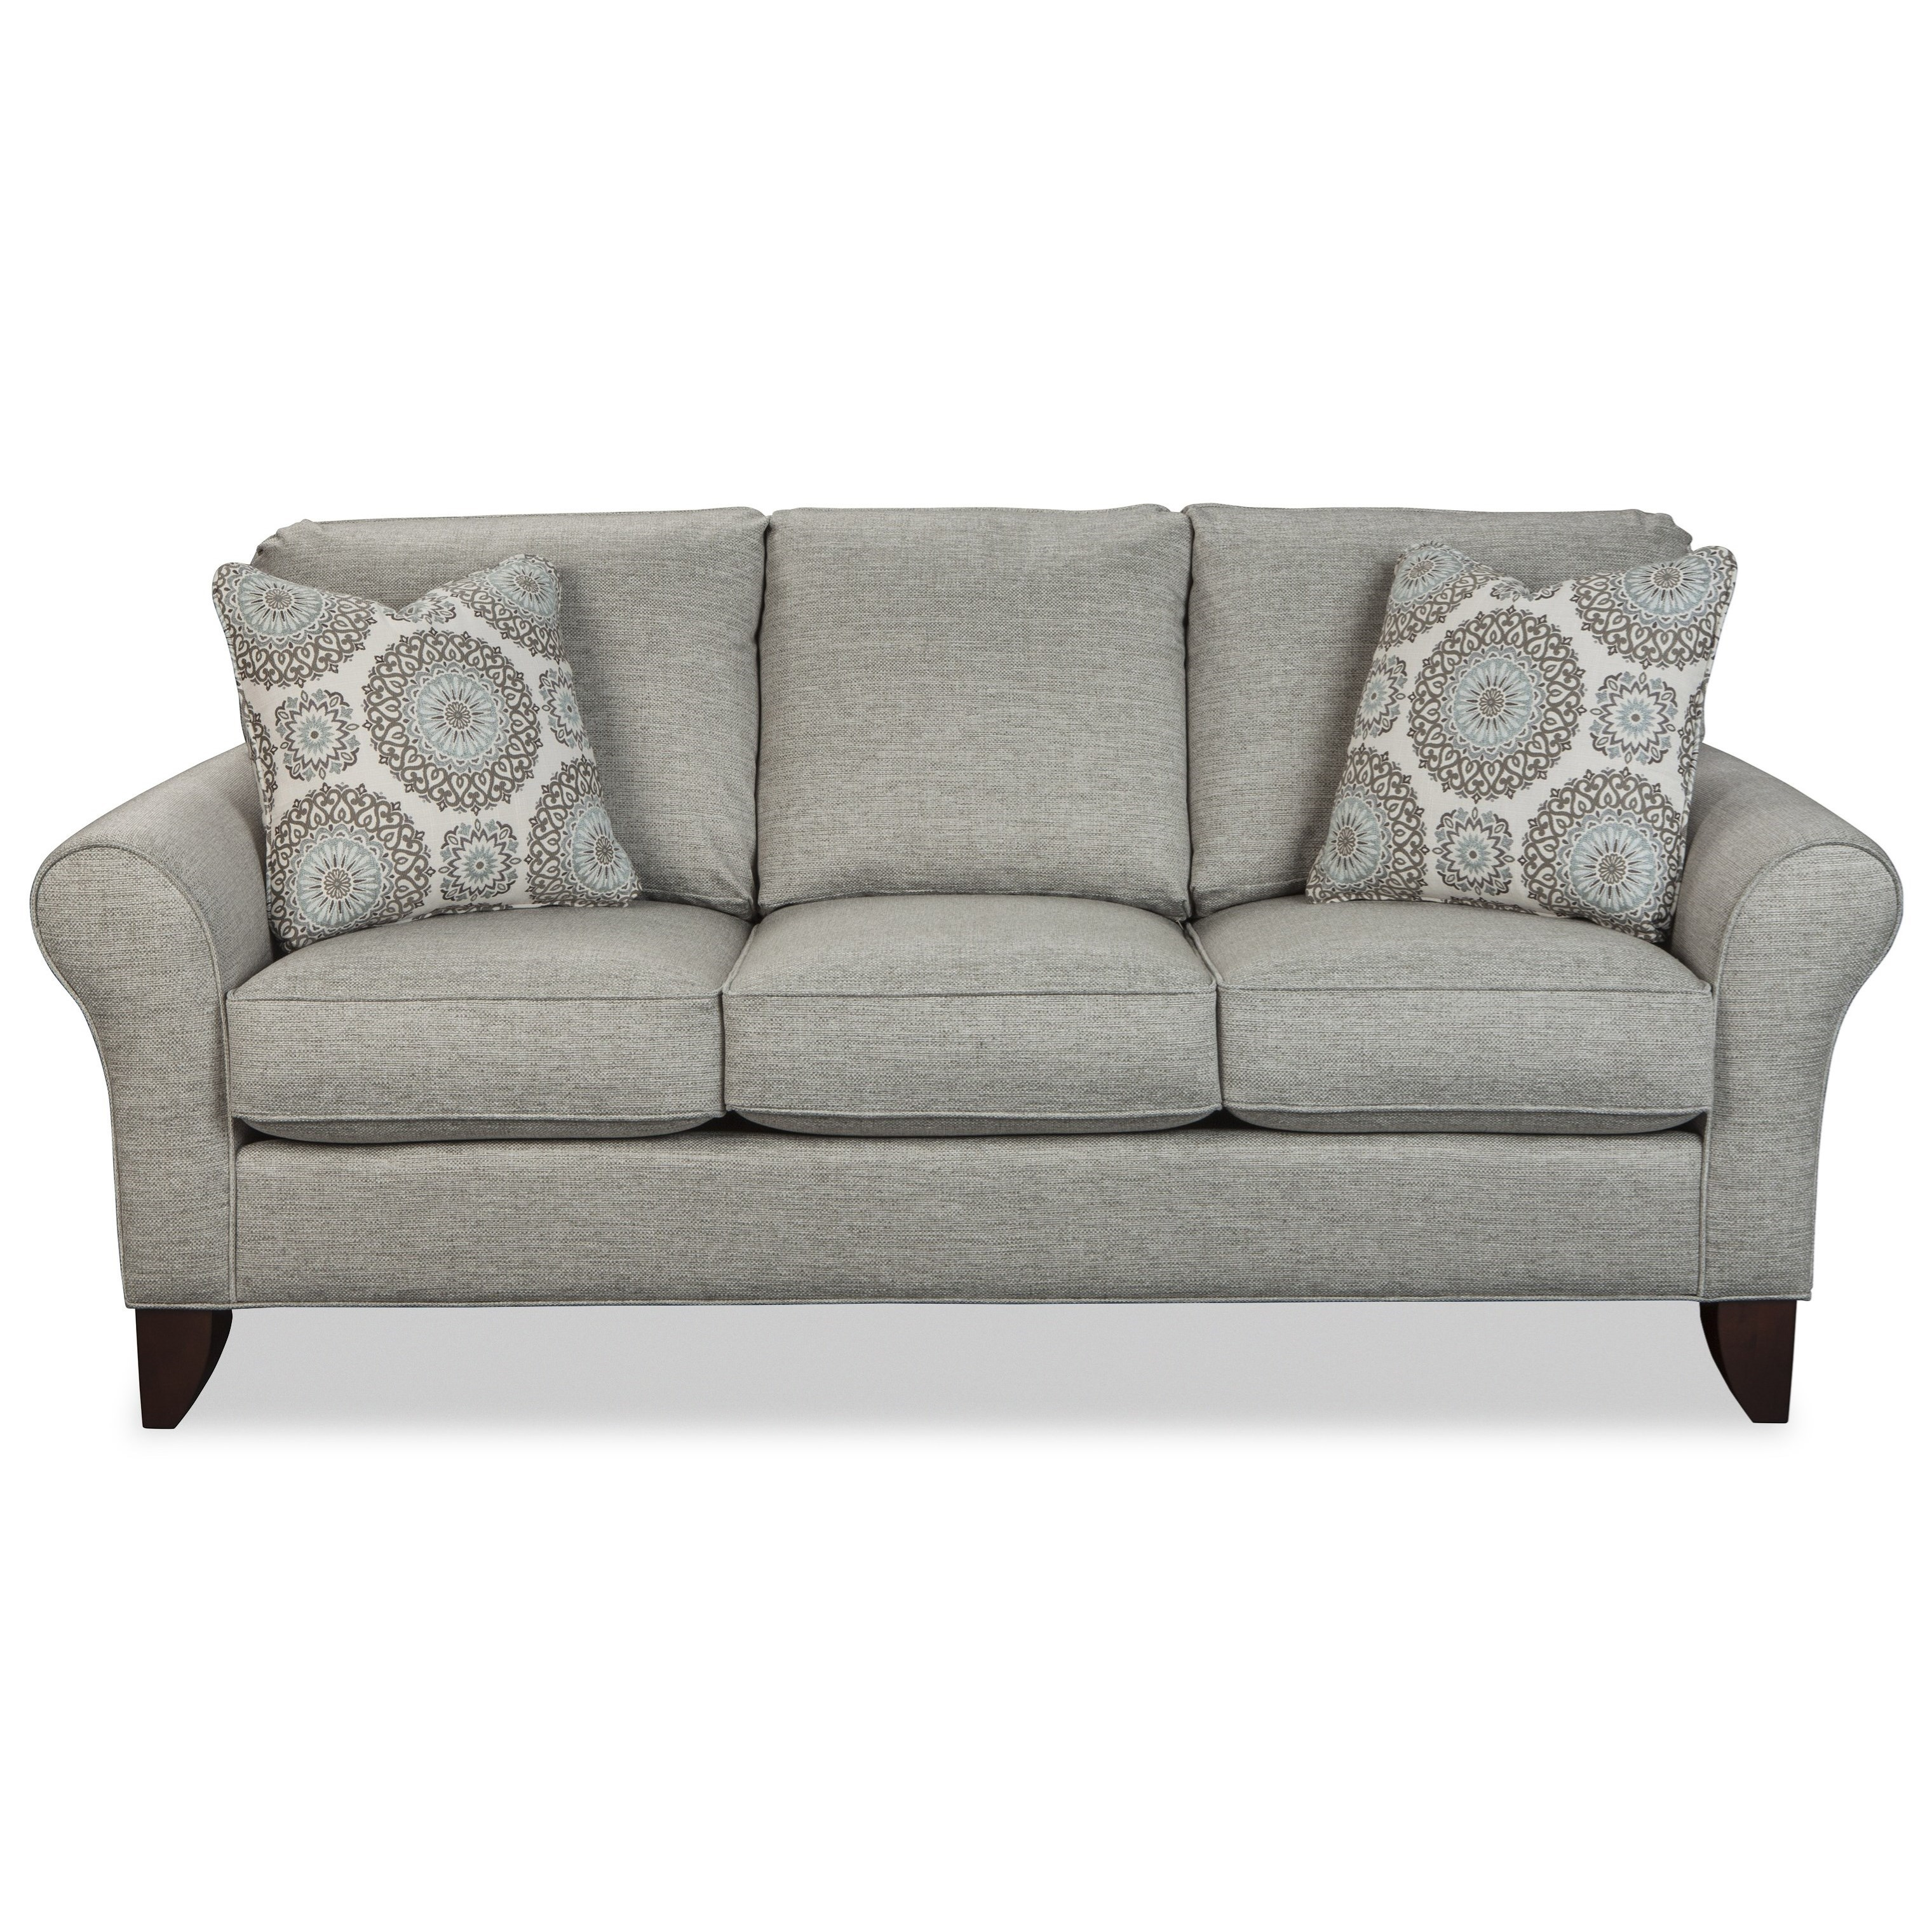 7551 Sofa by Craftmaster at Miller Home